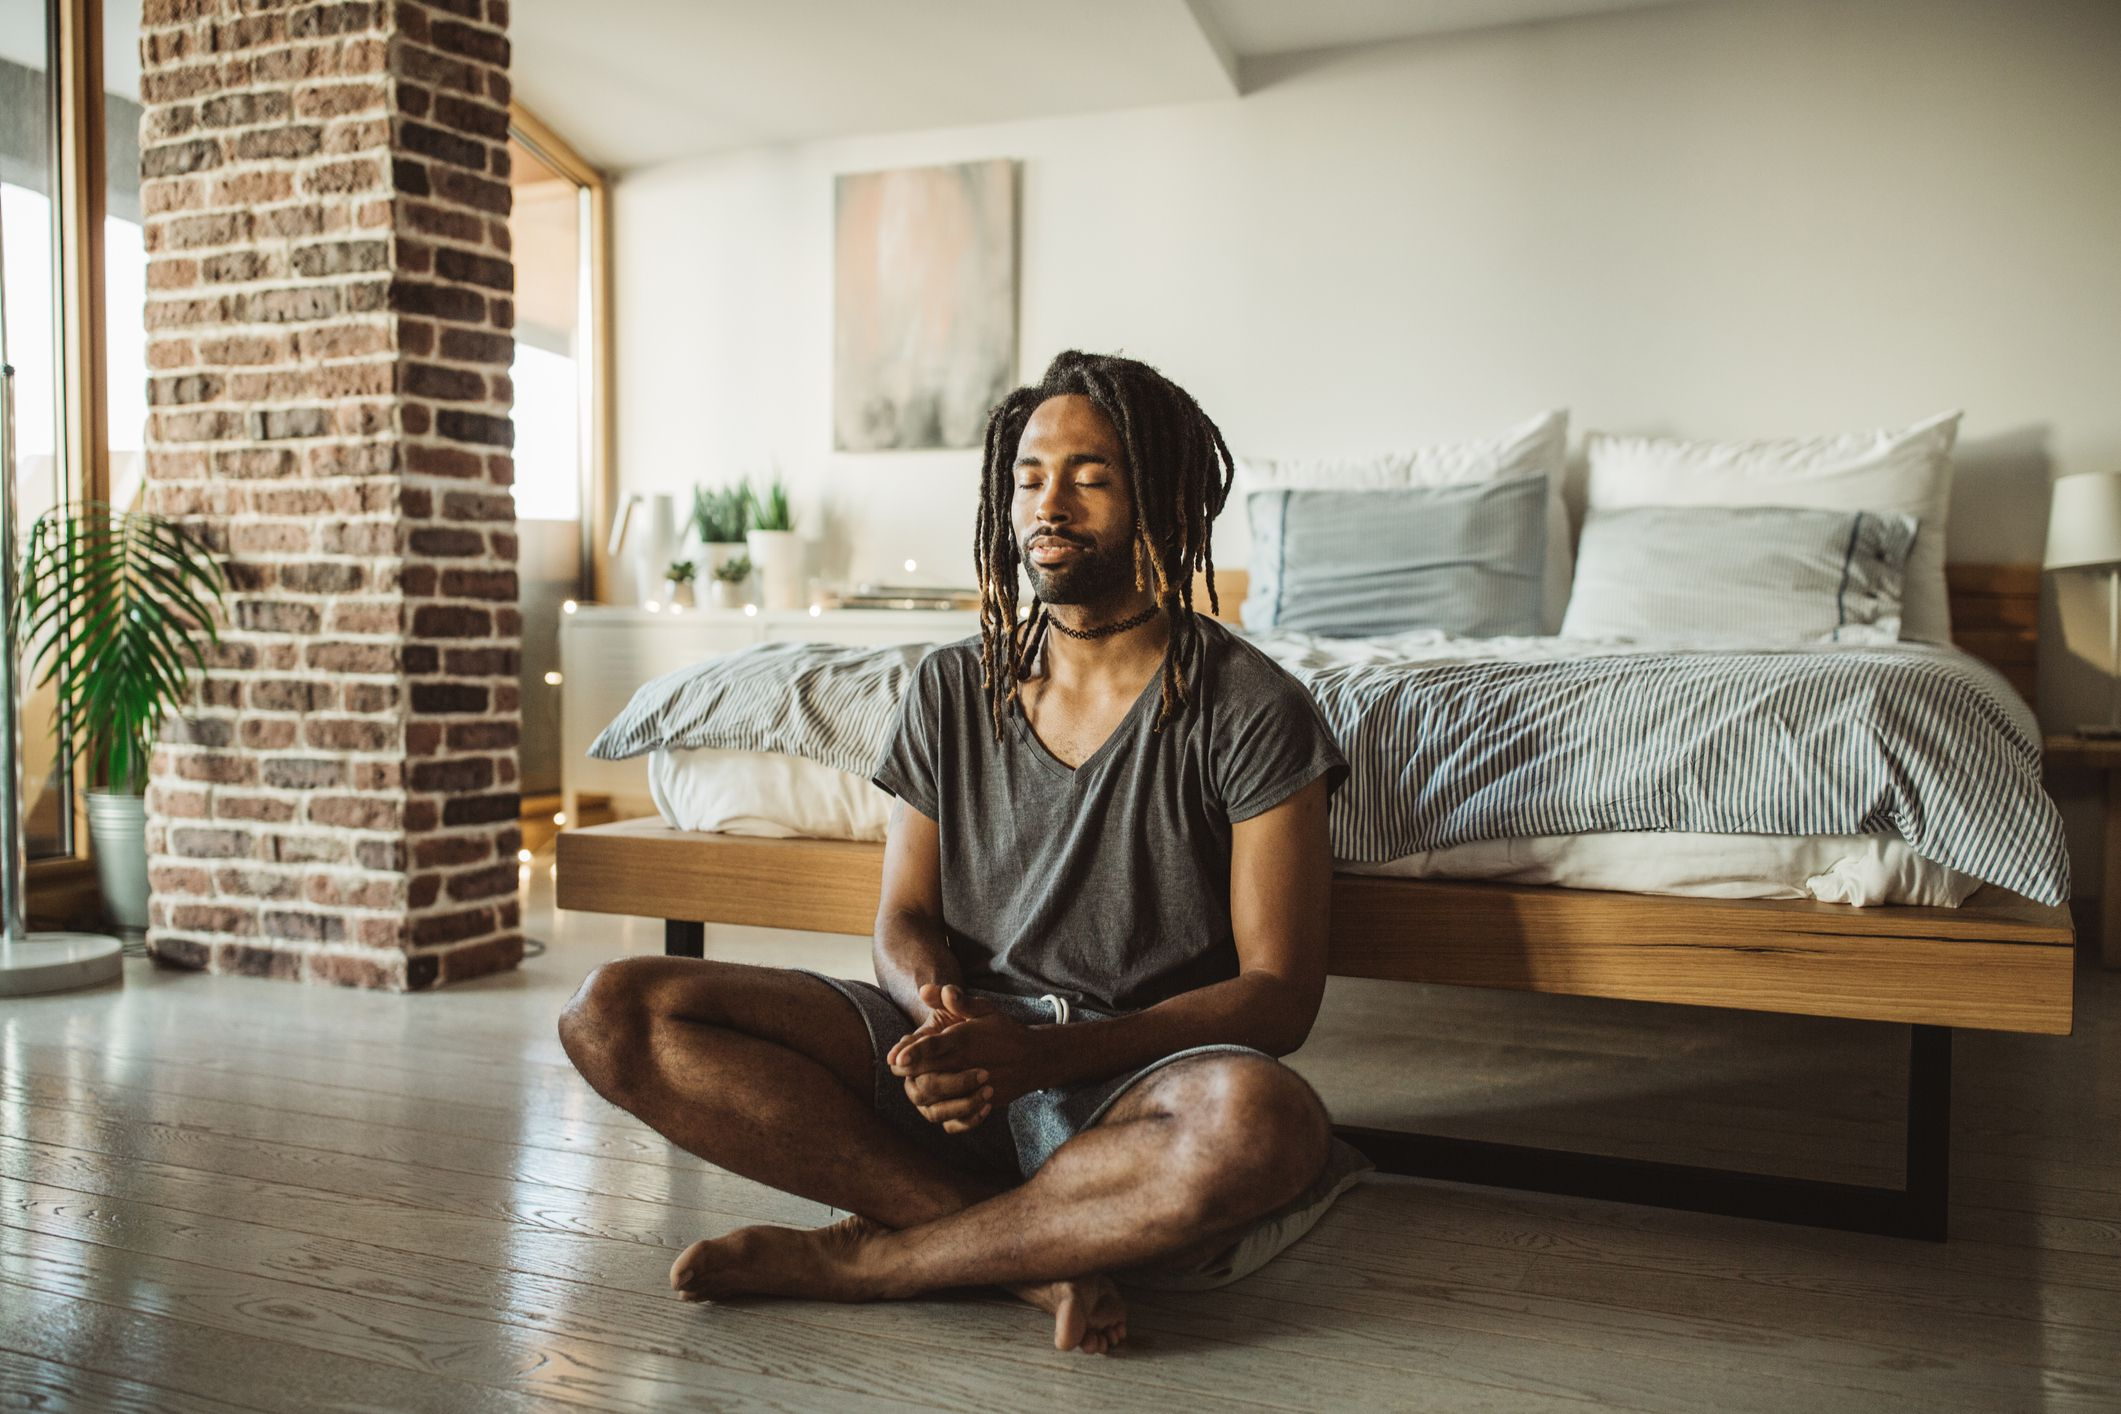 5 Meditation Techniques to Get You Started